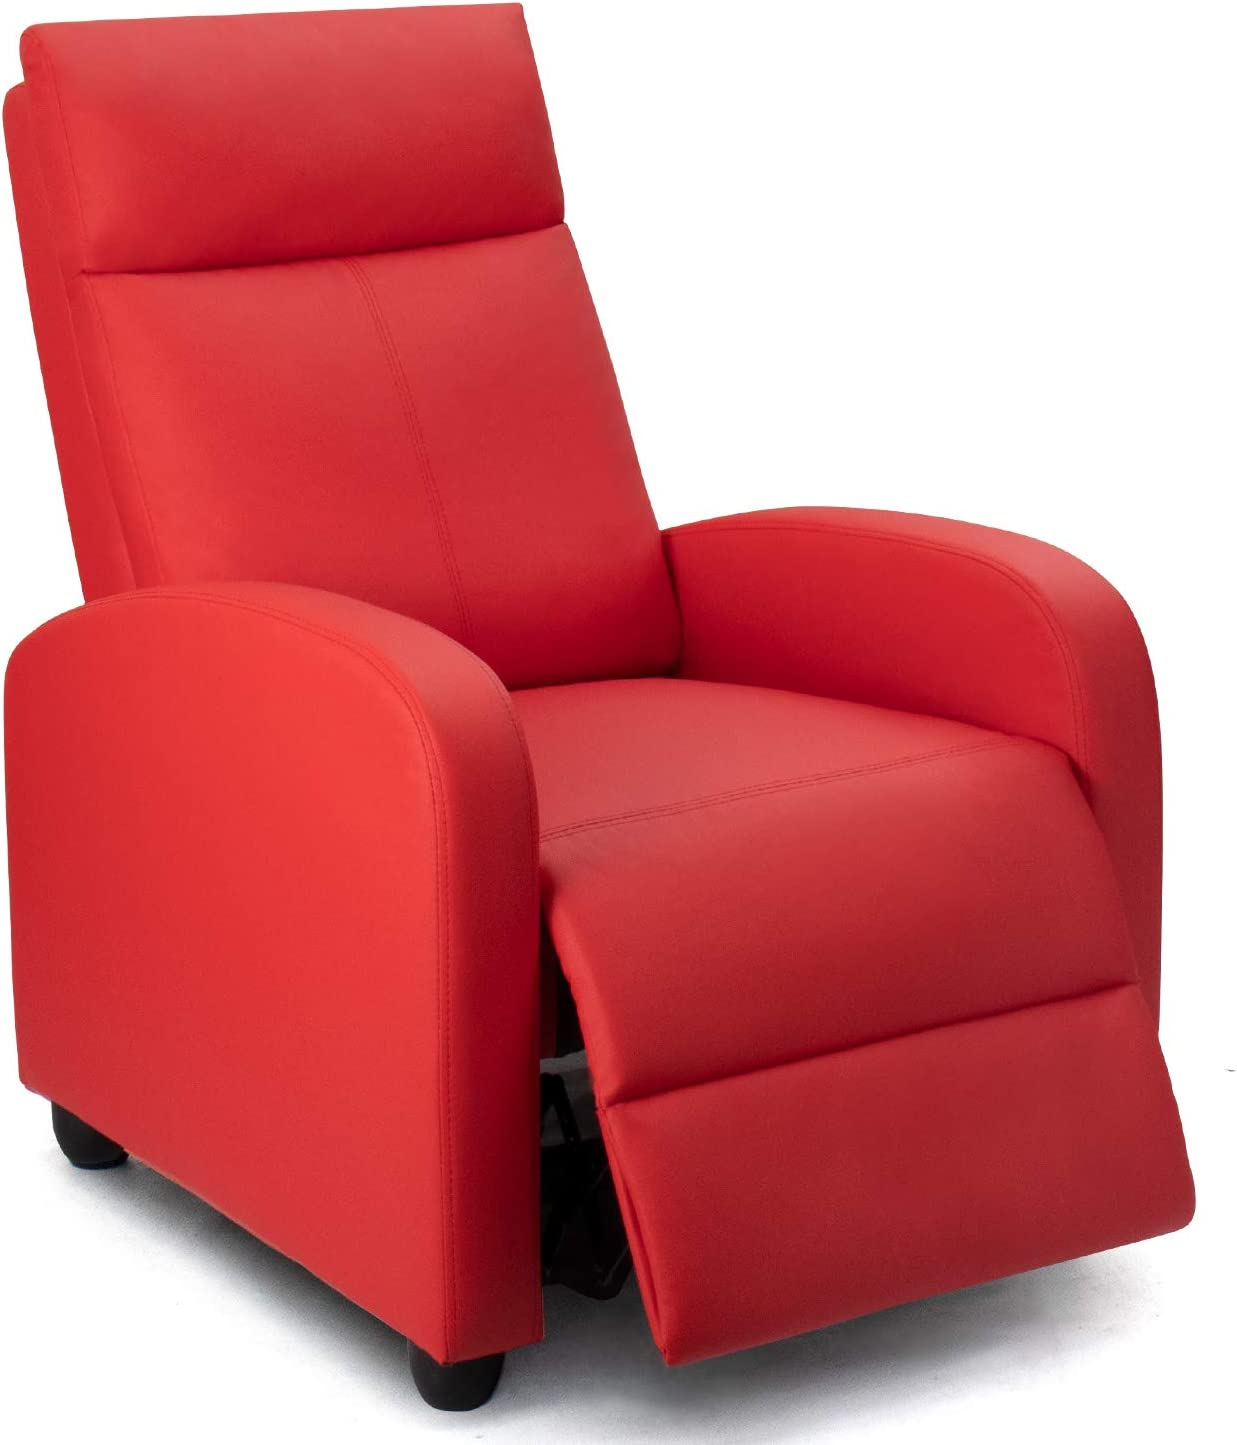 Homall Recliner Chair Padded Seat PU Leather for Living Room Single Sofa Recliner Modern Recliner Seat Club Chair Home Theater Seating (Red)